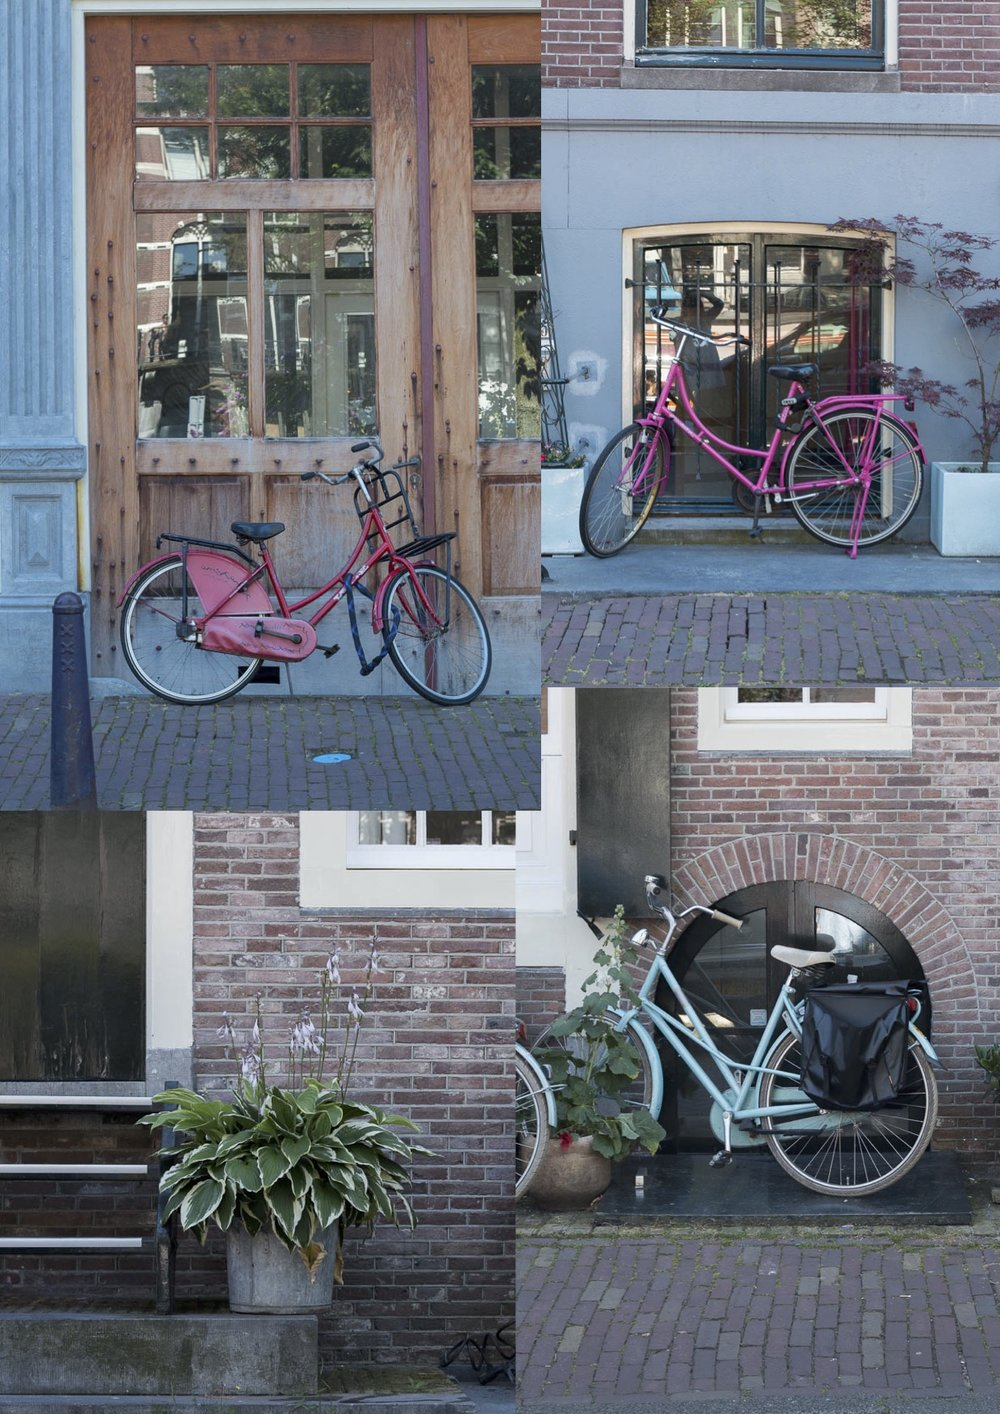 Jette Virdi travels to Amsterdam and sees lots of bikes